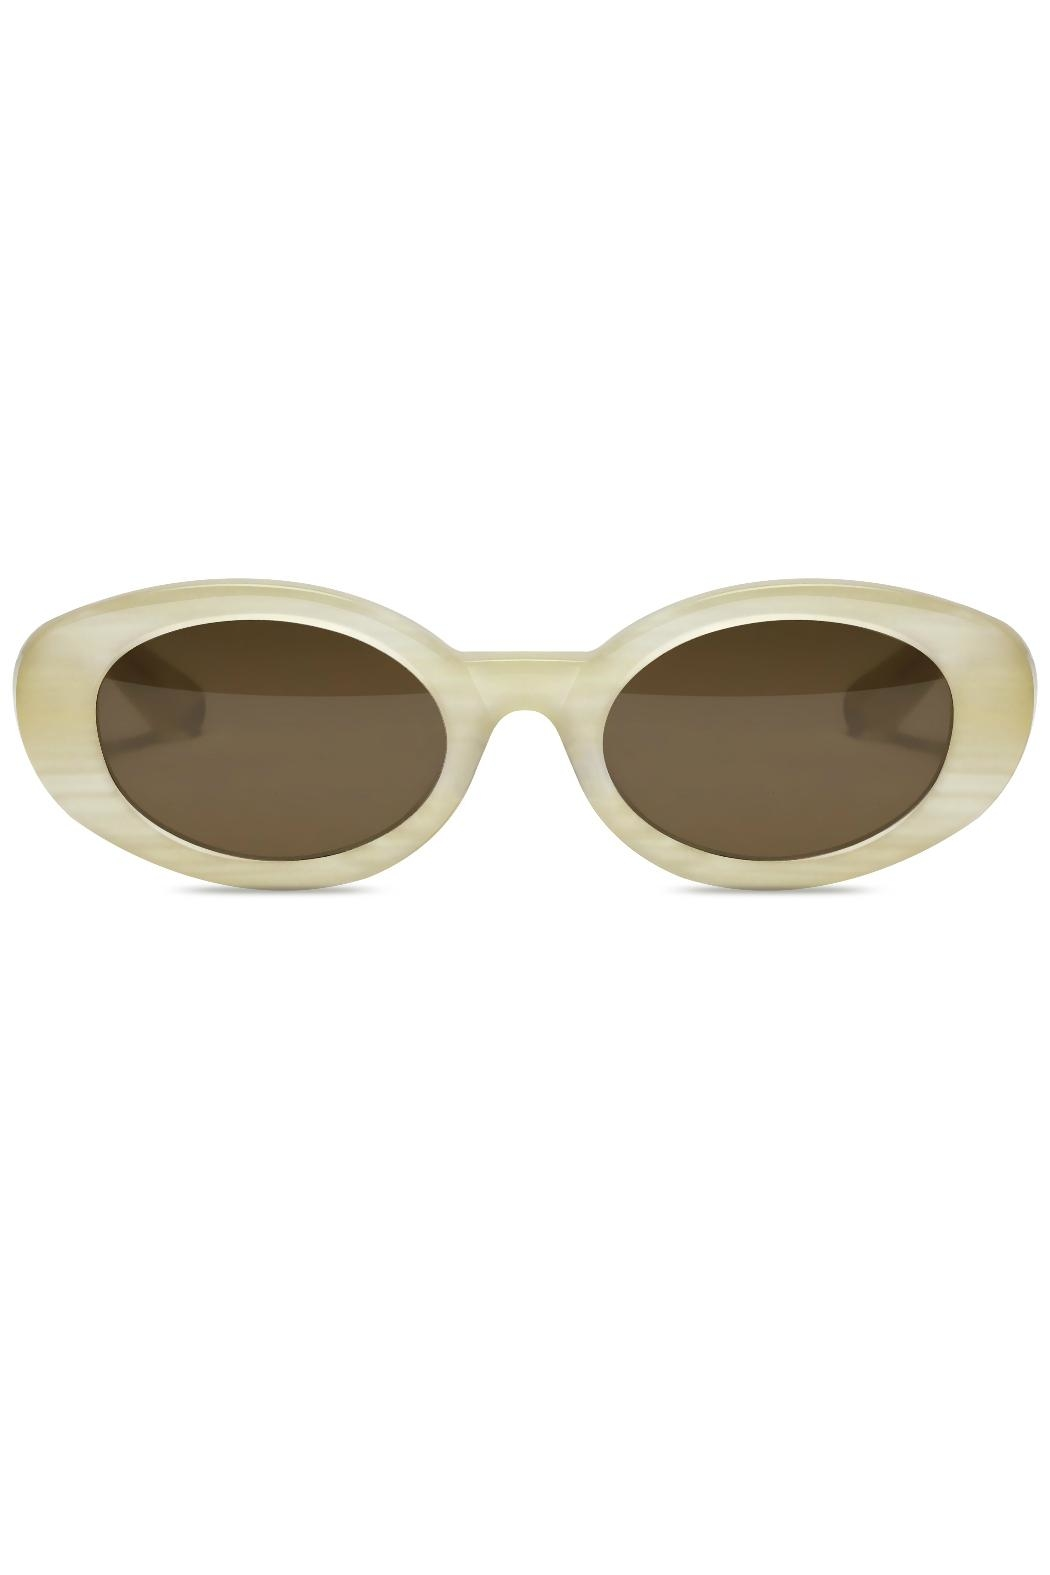 Elizabeth and james Sunglasses McKinley White - Front Cropped Image